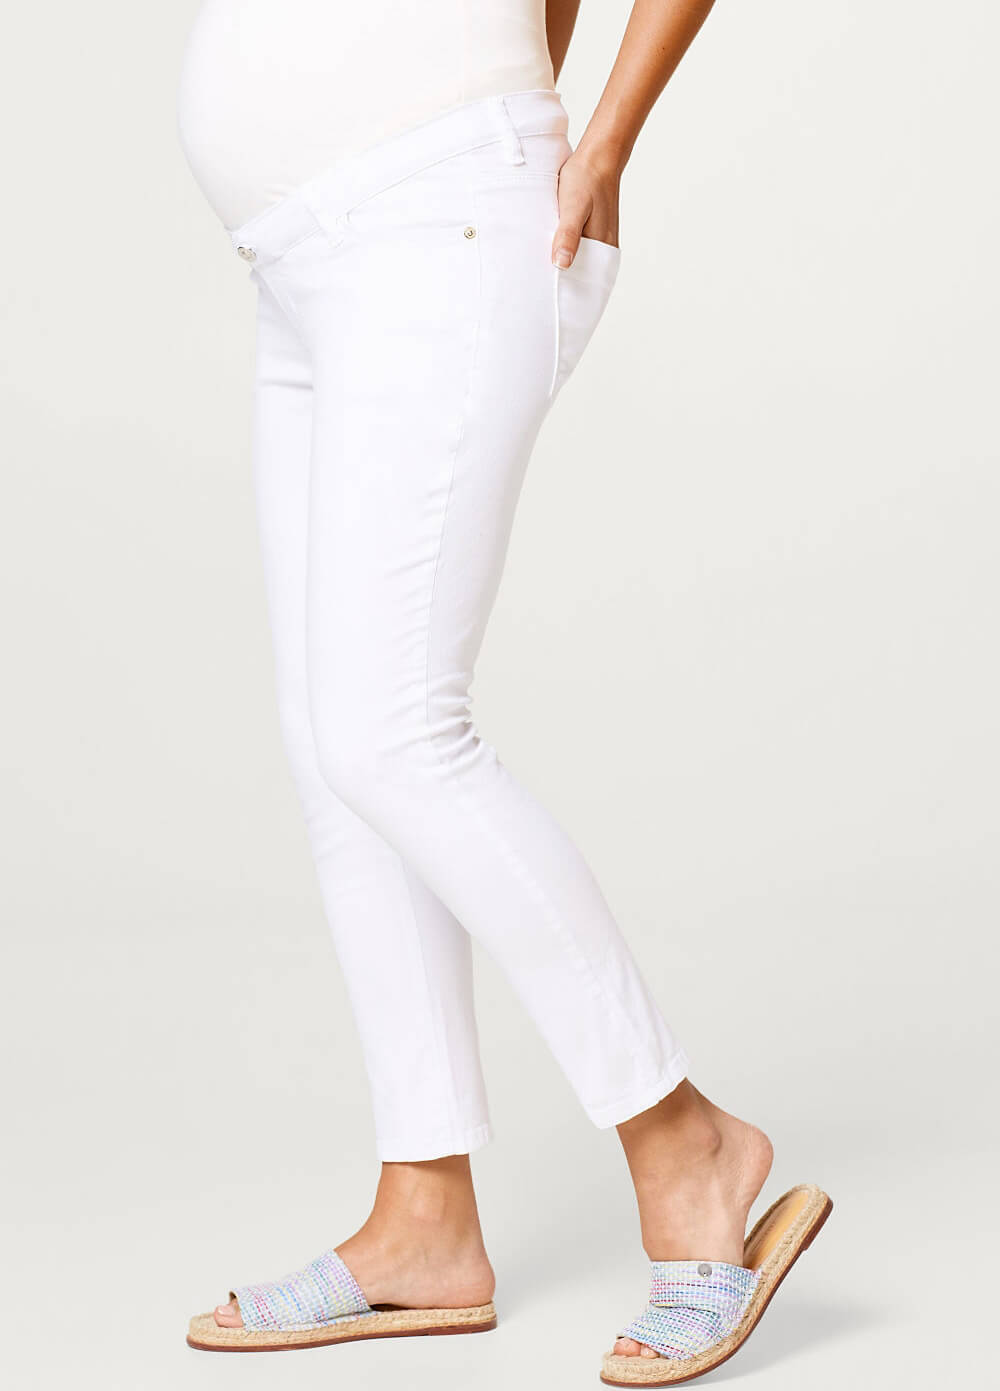 Cropped White Maternity Jeans by Esprit